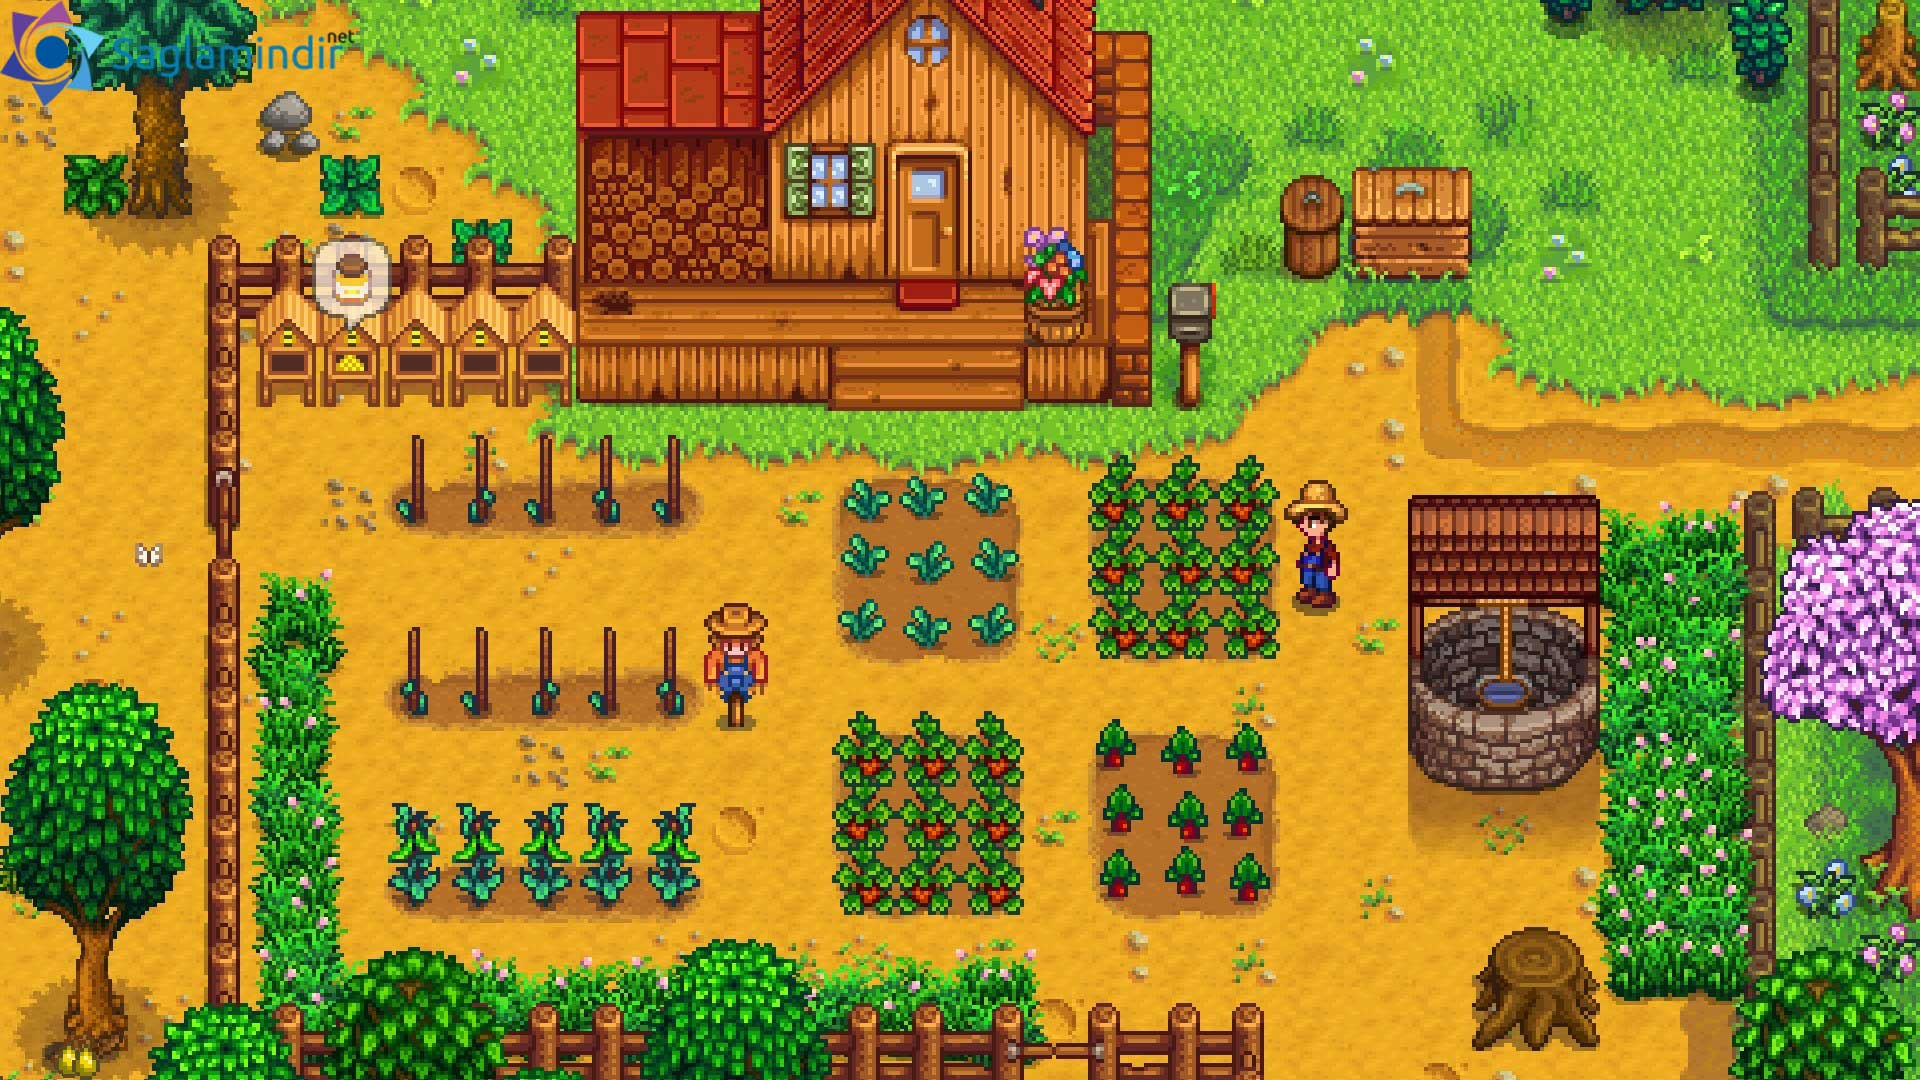 stardew valley full indir